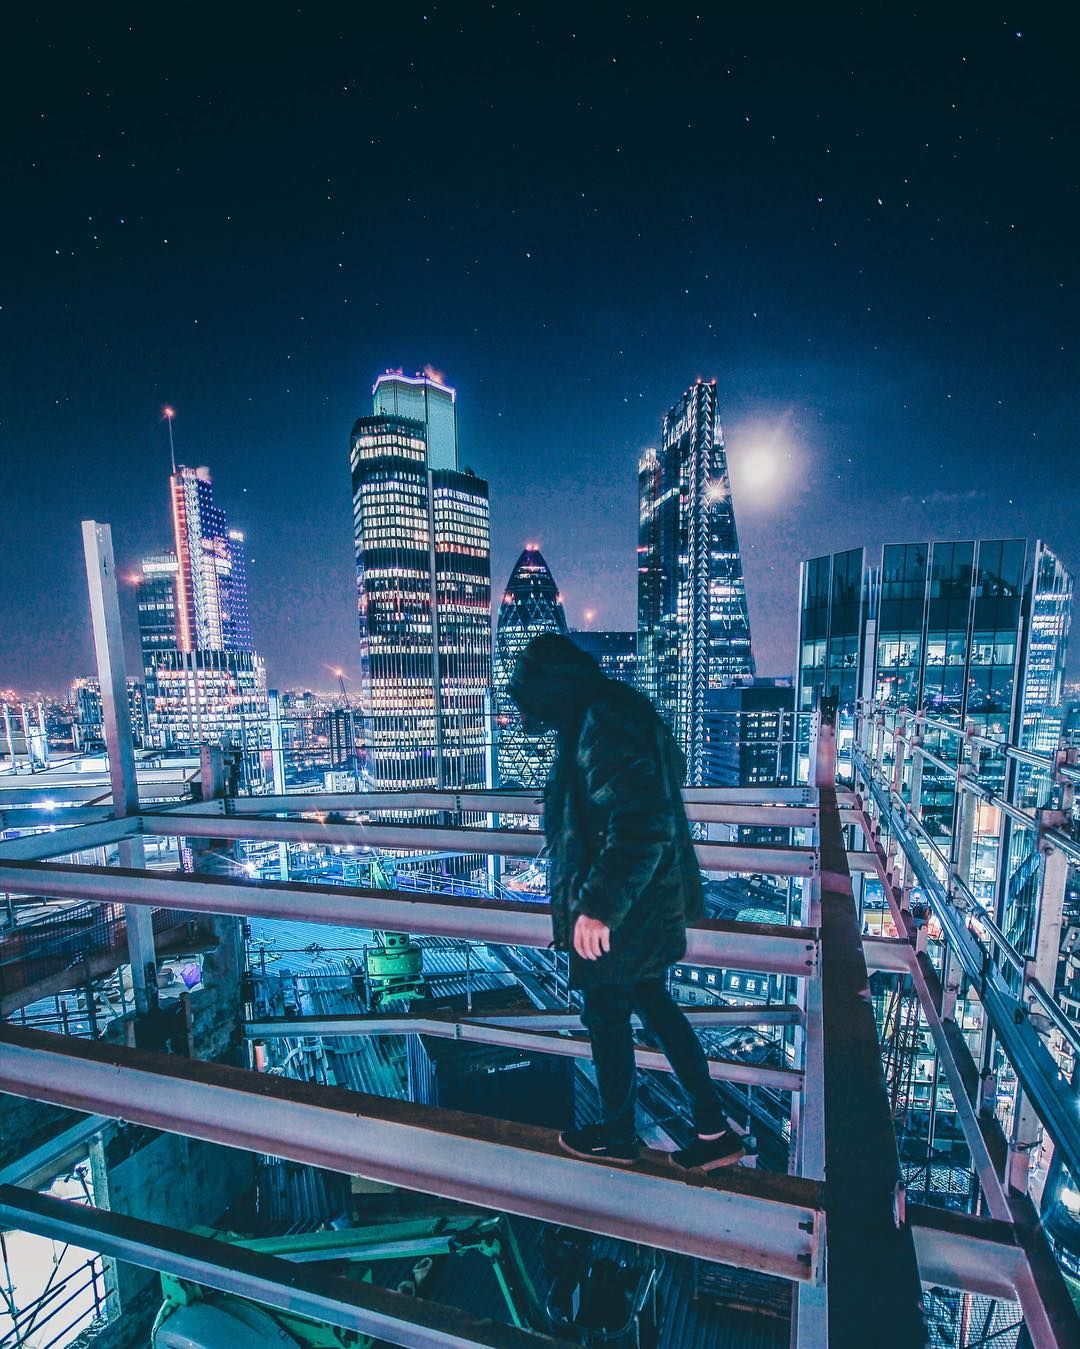 Harry Gallagher (@night.scape